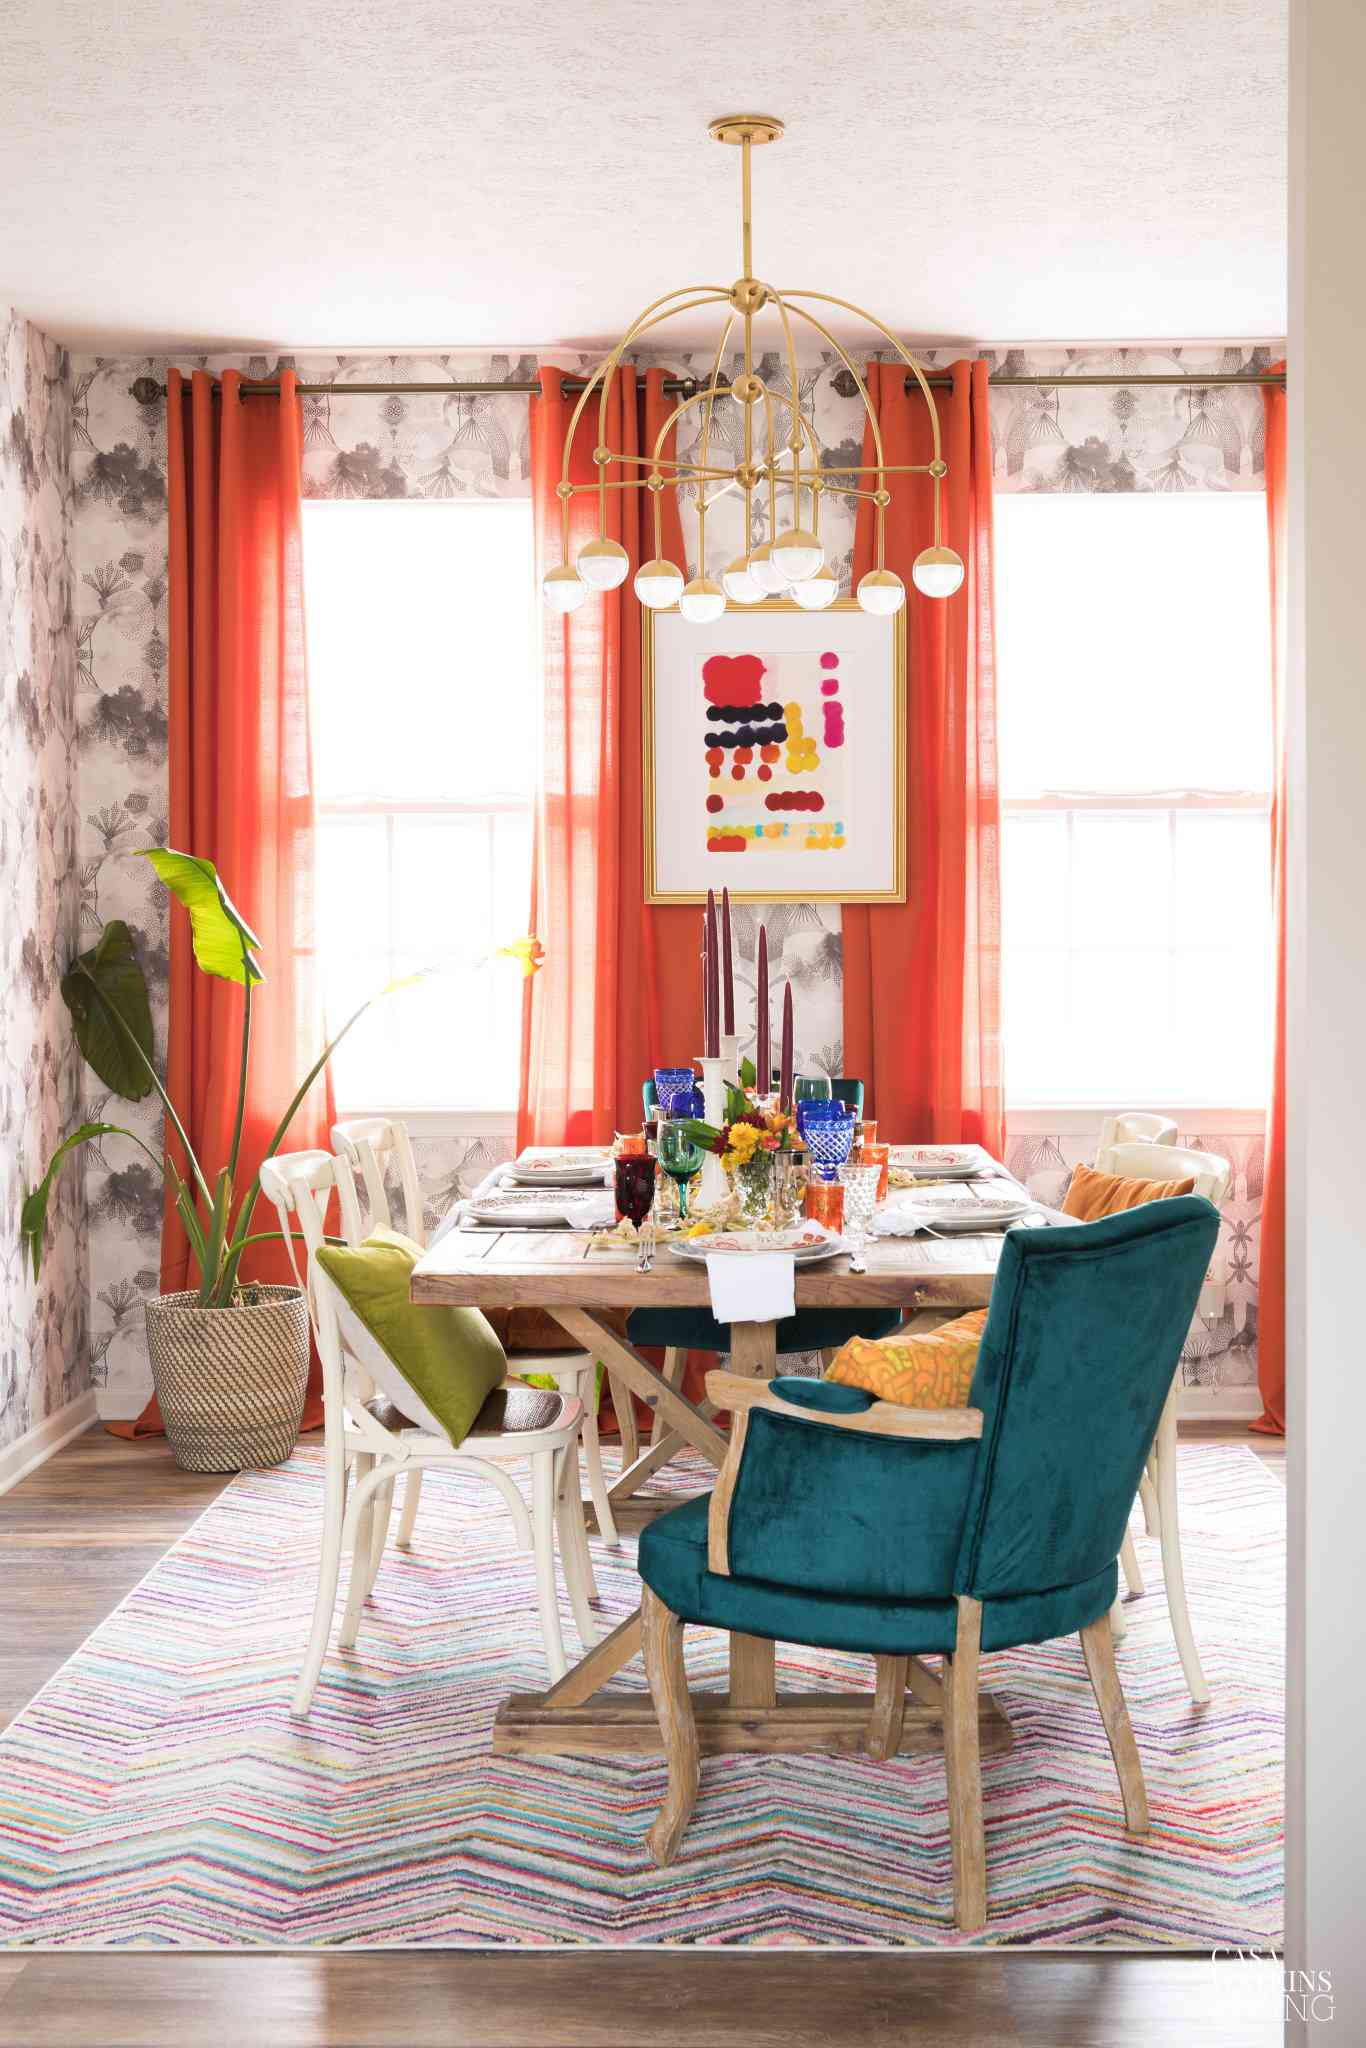 Dining room with orange-red curtains